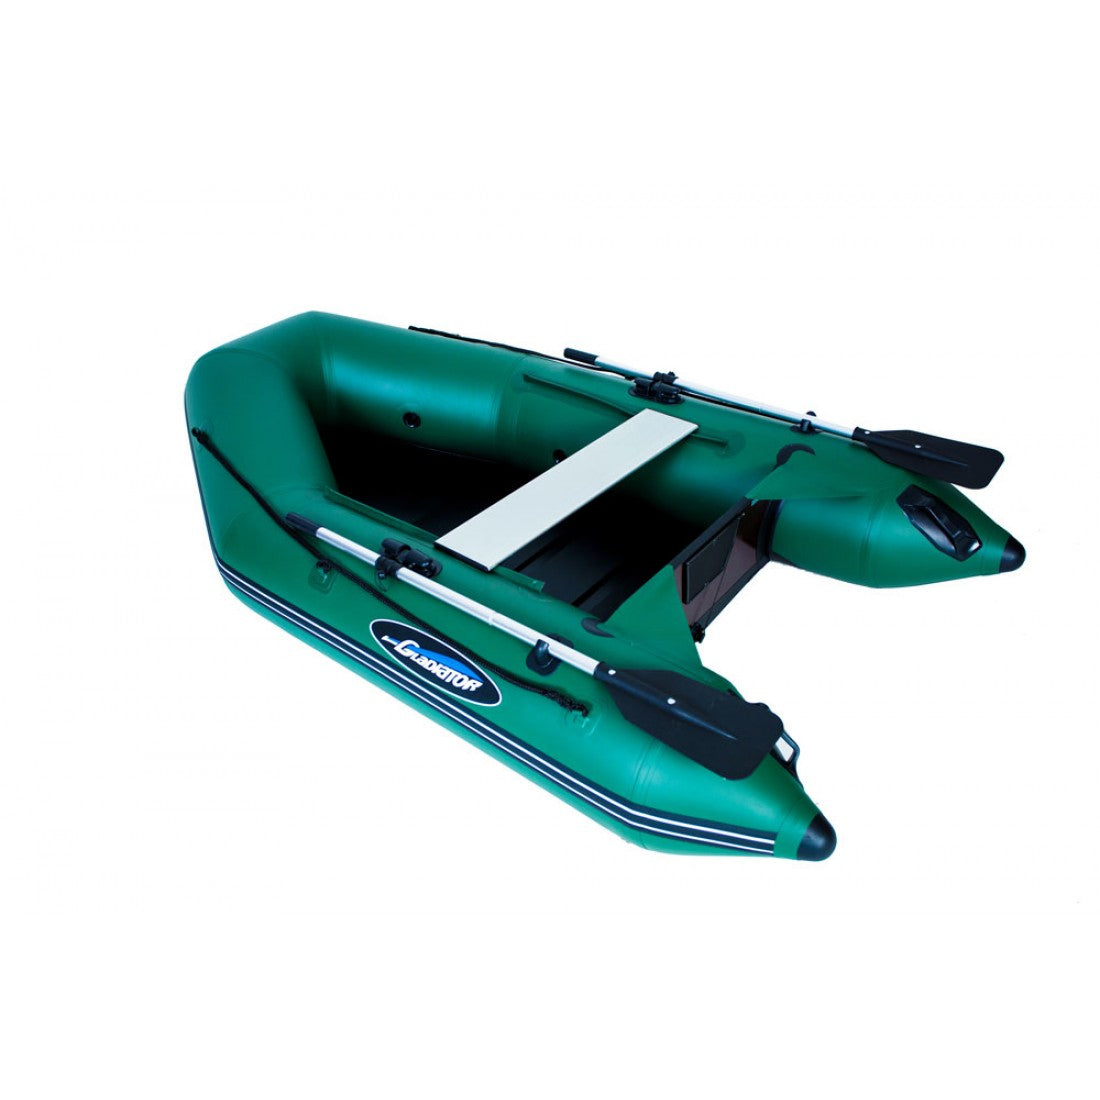 Gladiator Inflatable Boat AK260SF